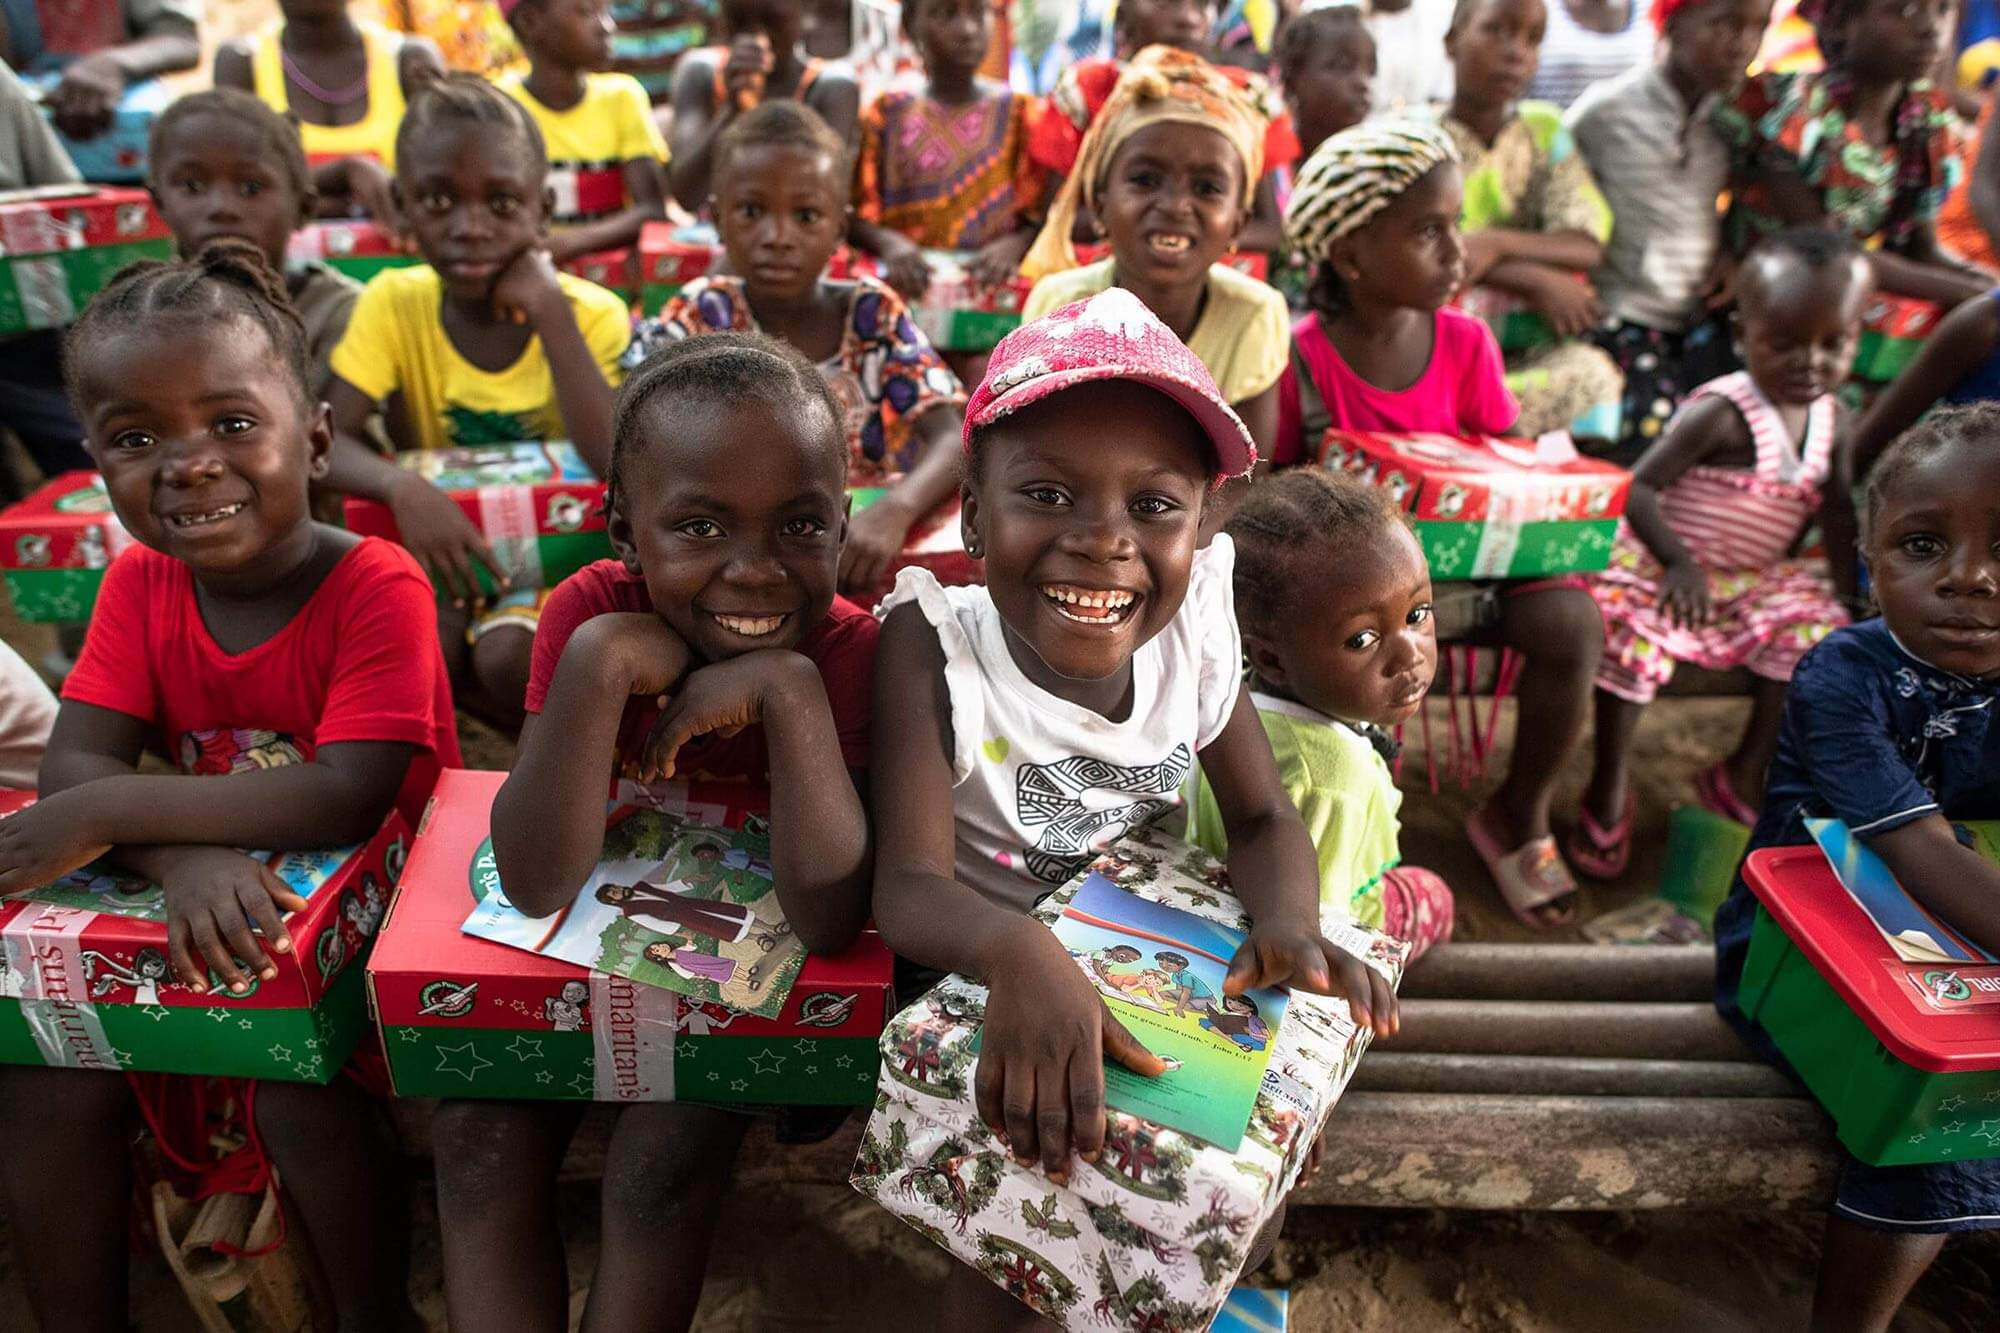 children in Africa with their shoeboxes